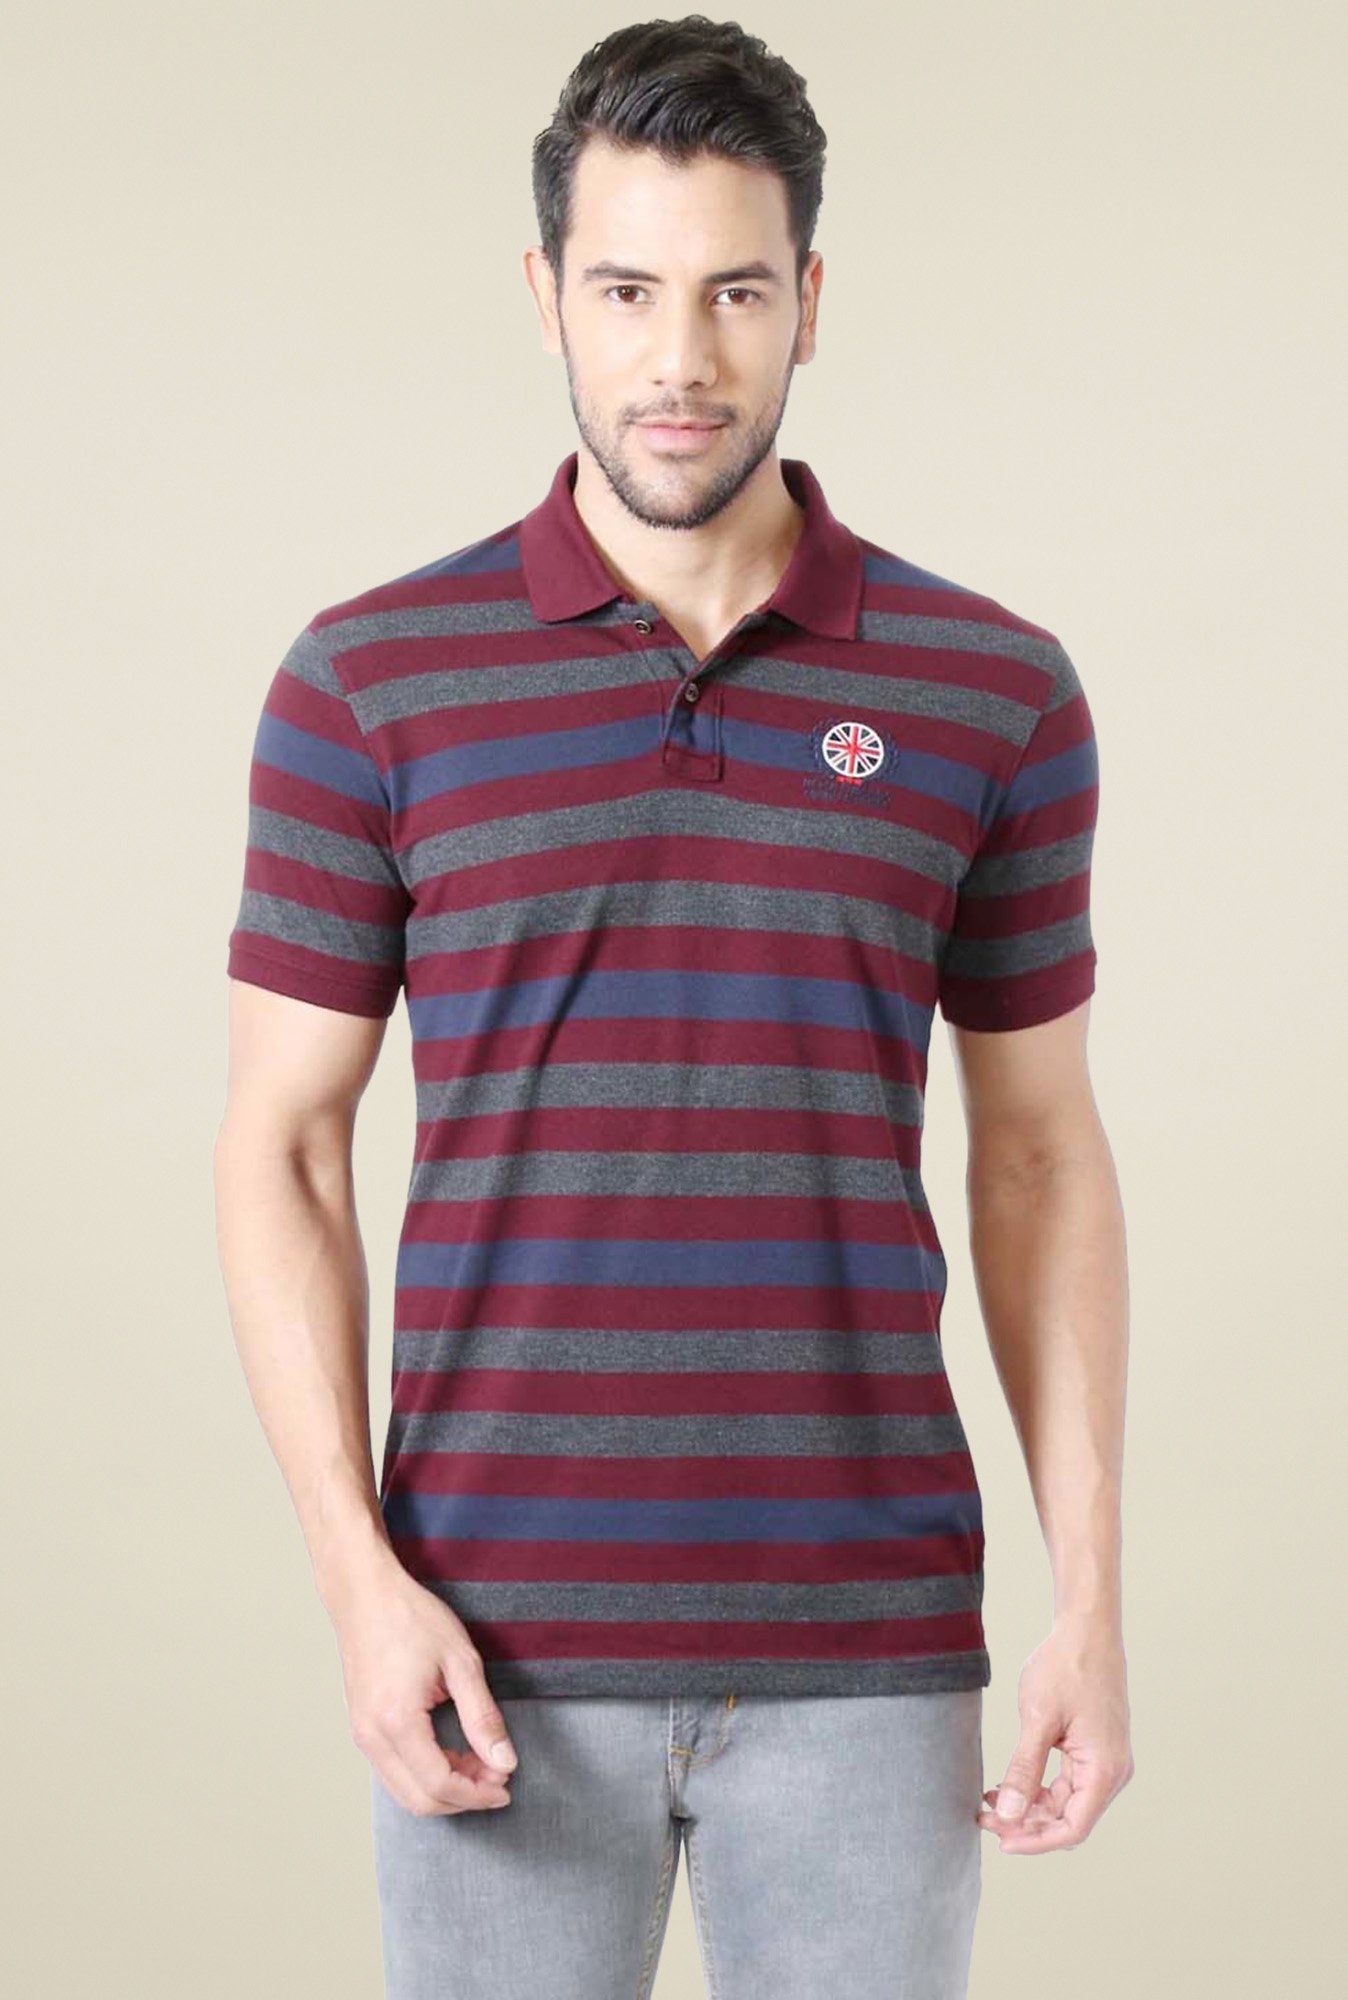 c78208a3c50 Buy Peter England Maroon   Grey Striped Polo T-Shirt for Men Online   Tata  CLiQ